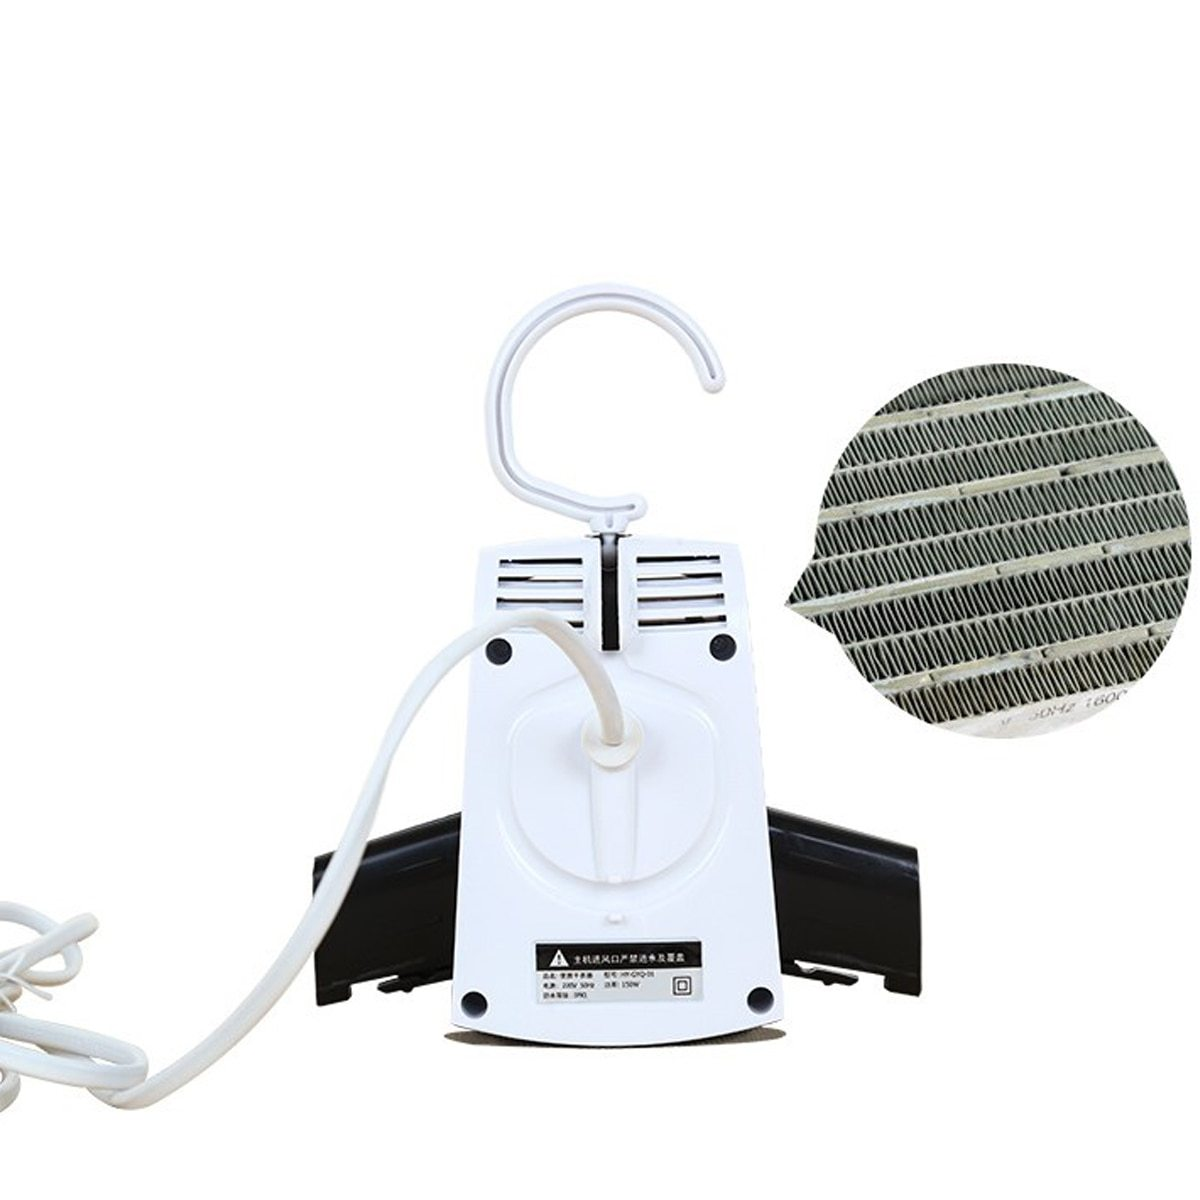 ELECTRIC CLOTHES DRYING RACK - Redbovi.com